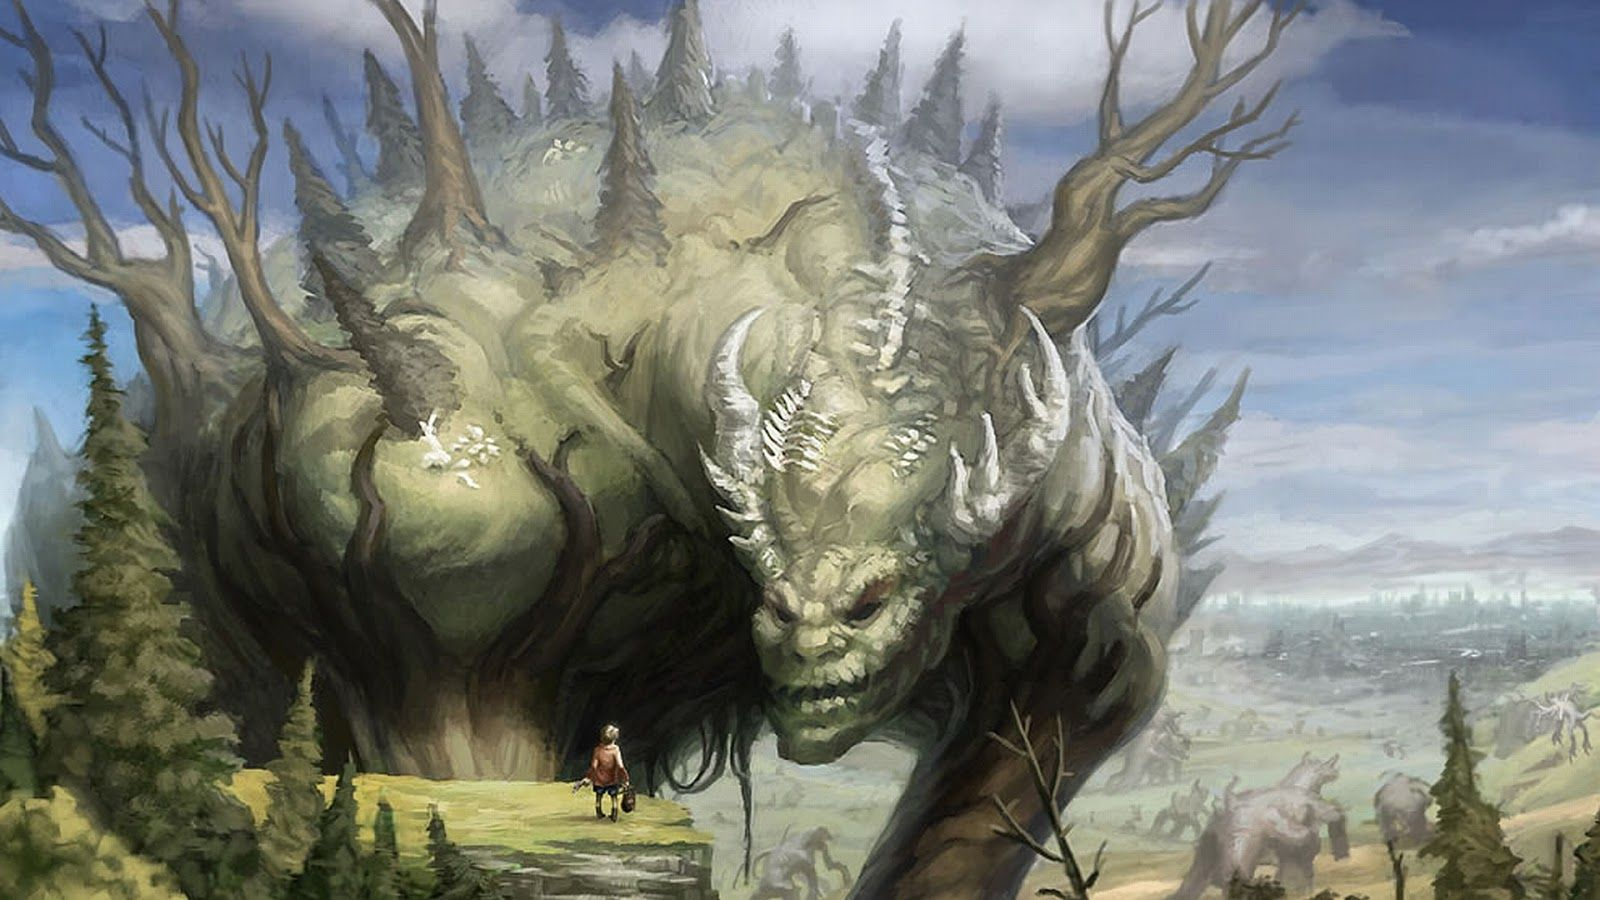 Earth Dragon Wallpapers - Top Free Earth Dragon Backgrounds